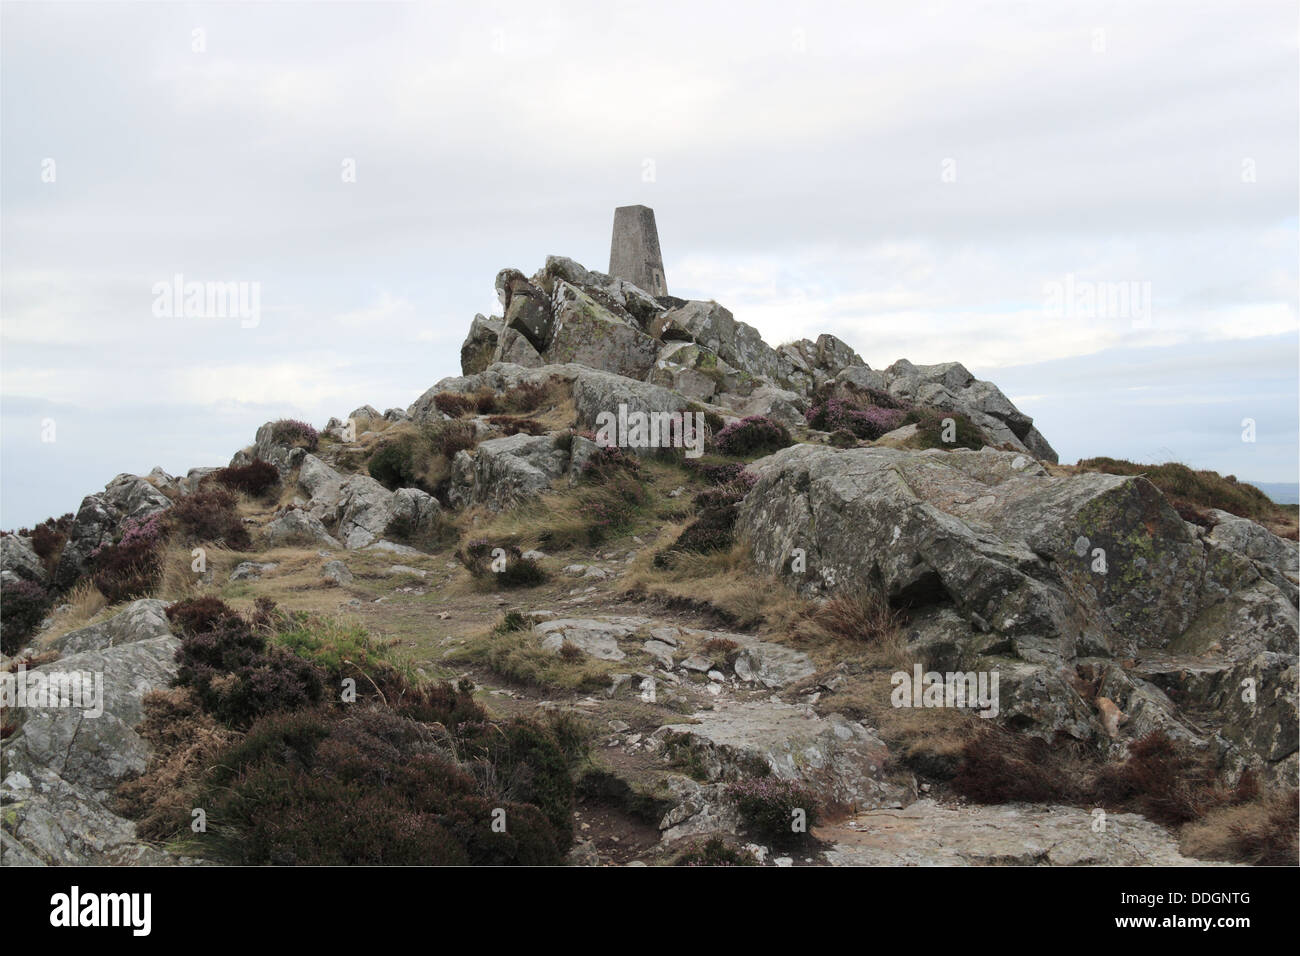 Highest point of Garn Fawr Iron Age Hillfort, Pen Caer peninsula, Pembrokeshire, Wales, Great Britain, United Kingdom, - Stock Image